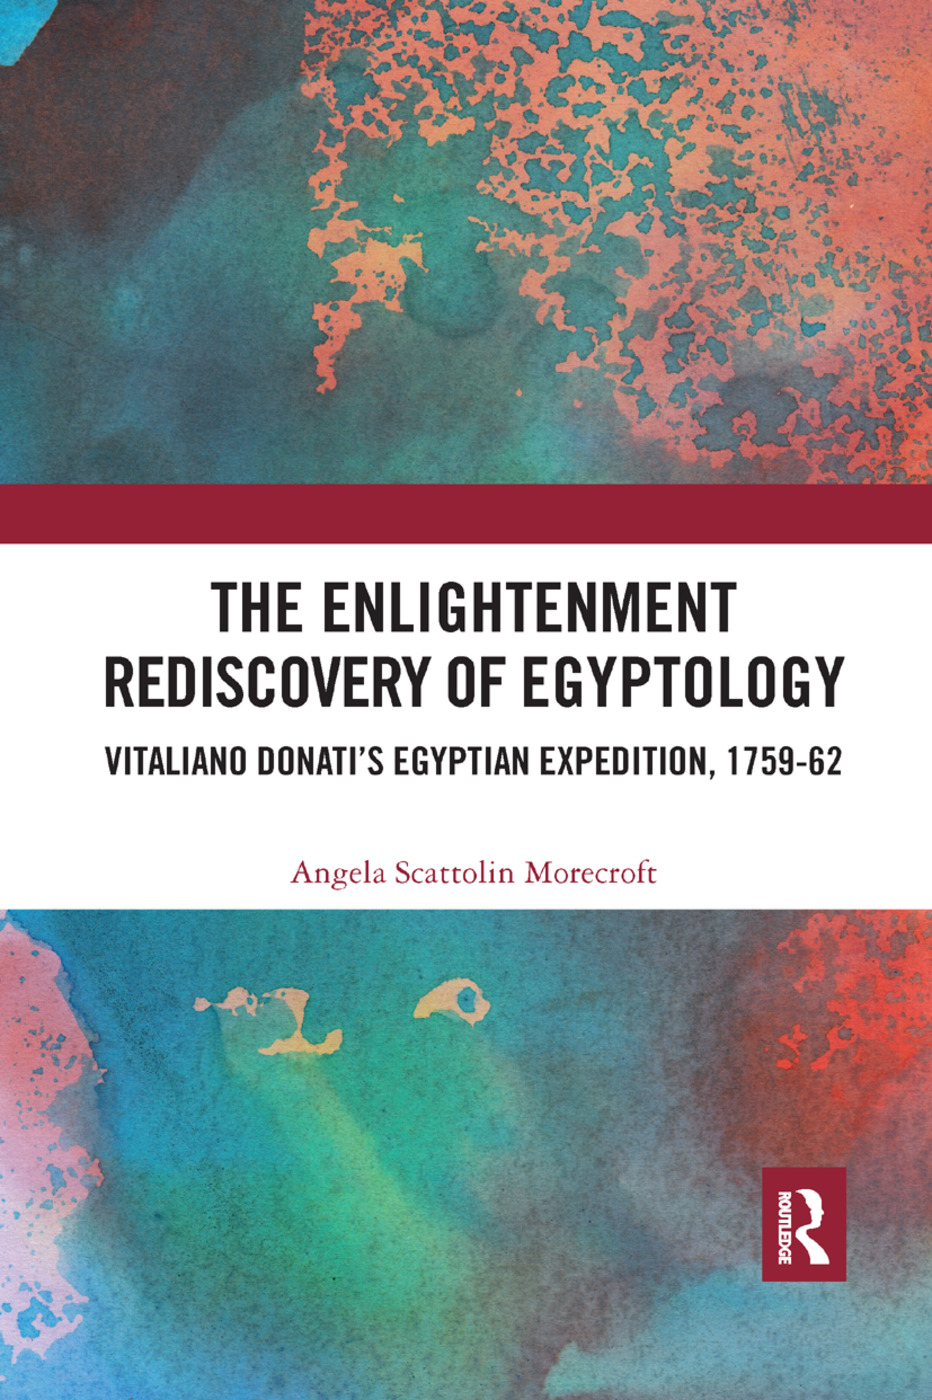 The Enlightenment Rediscovery of Egyptology: Vitaliano Donati's Egyptian Expedition, 1759–62 book cover